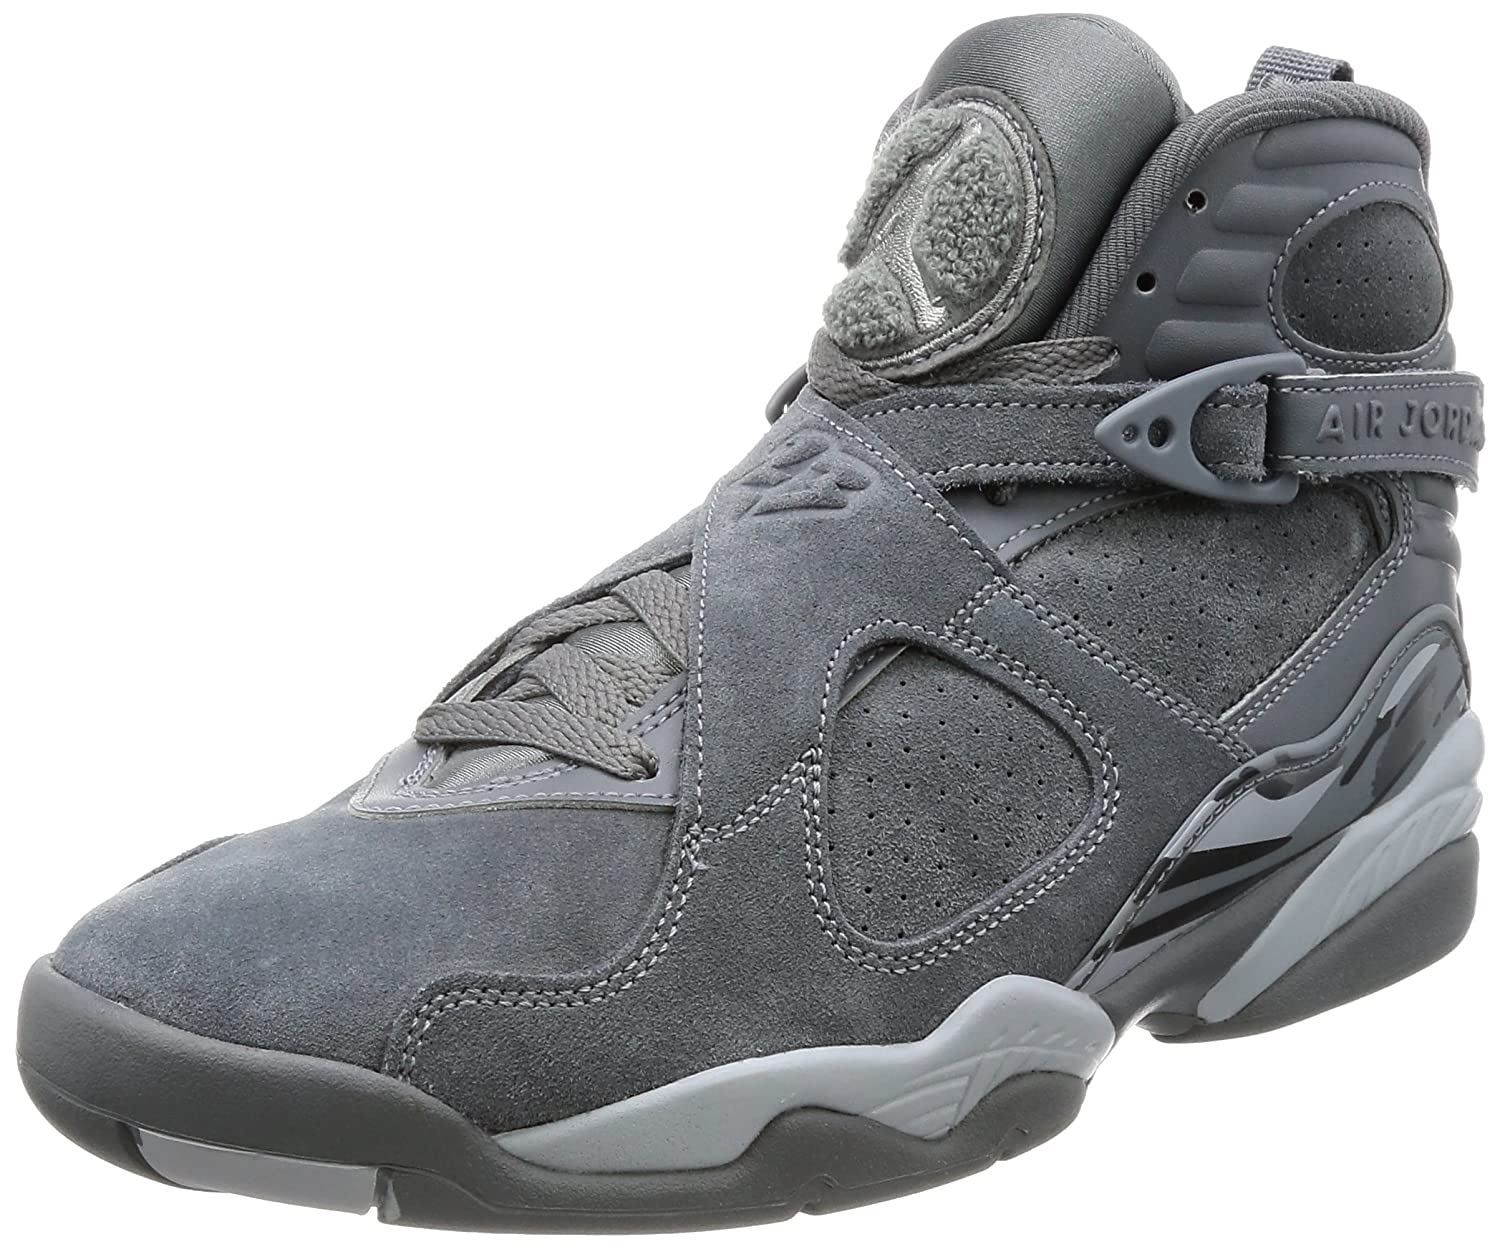 low priced ae020 667ce Amazon.com   Air Jordan 8 Retro - 305381 014   Basketball